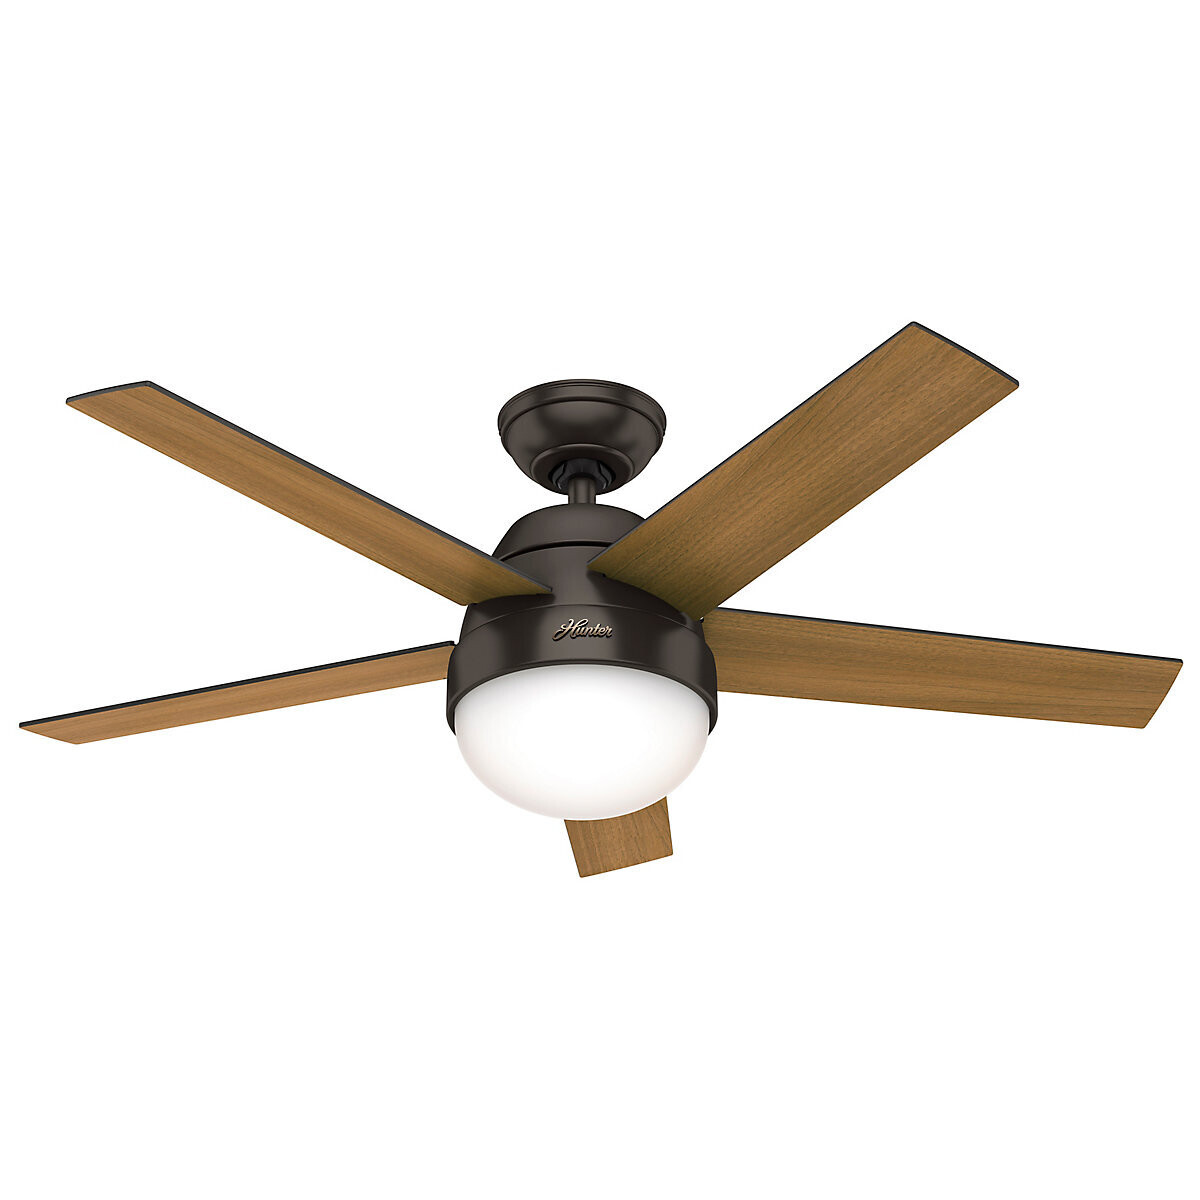 HUNTER STILE Premier Bronze ceiling fan Ø117 with Integrated Luminaire and Remote Control